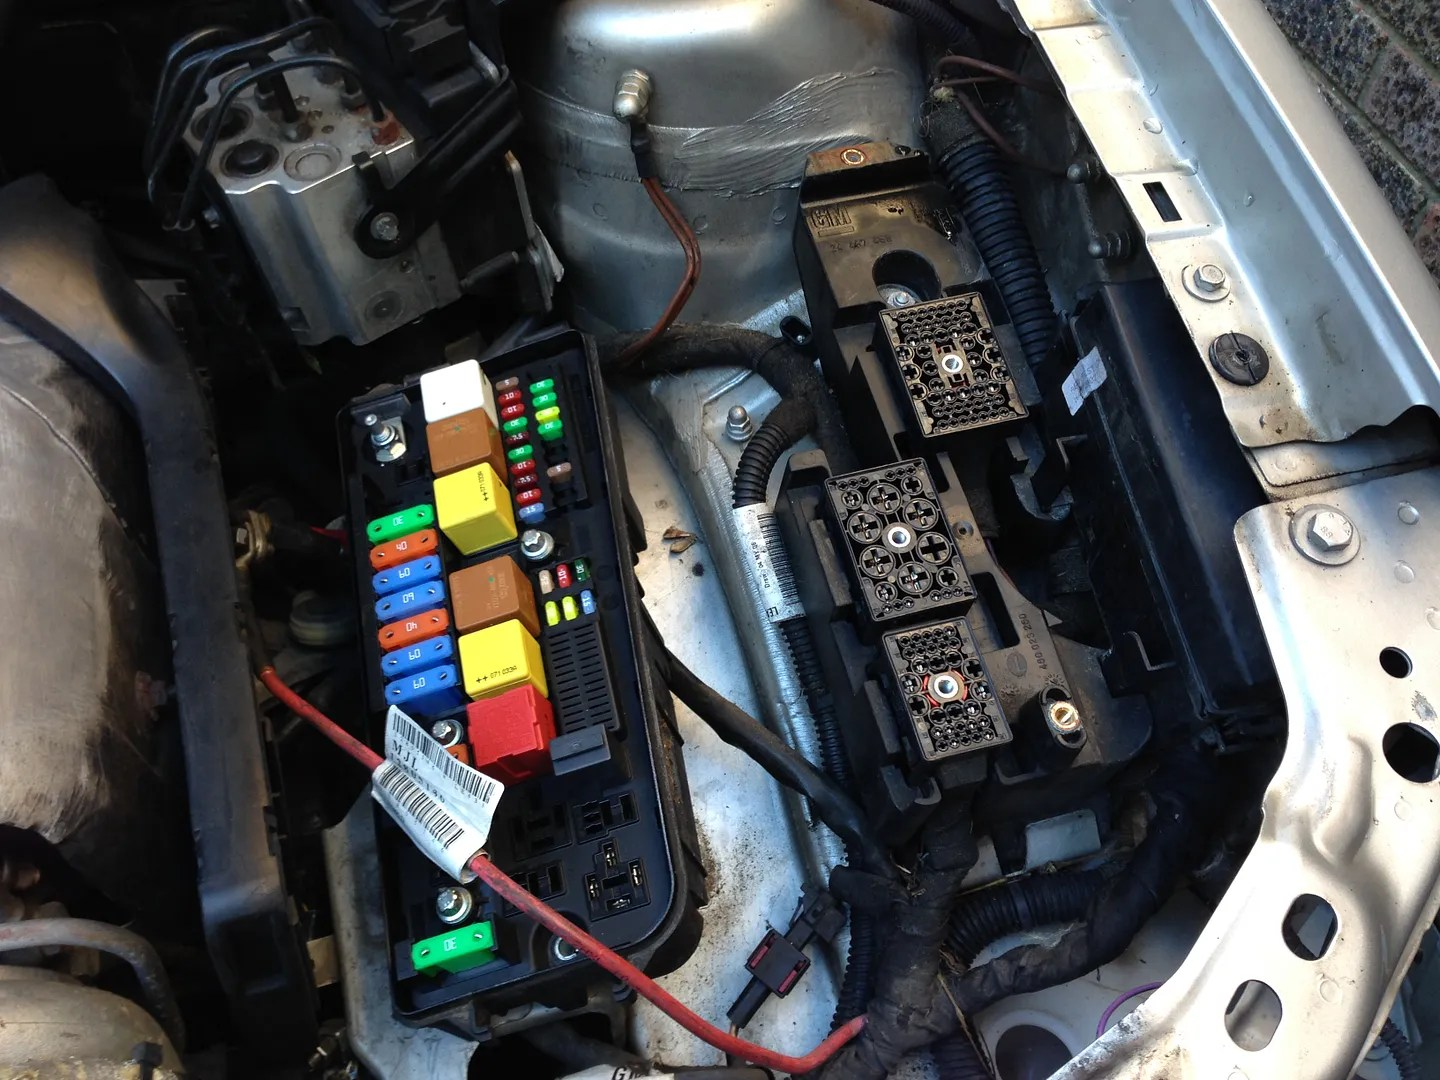 hight resolution of  126e6df5 95c3 46d2 a108 6662487899f8 zpskpimirtq 2007 vectra vxr page 35 vauxhall owners network forum club vauxhall vivaro fuse box